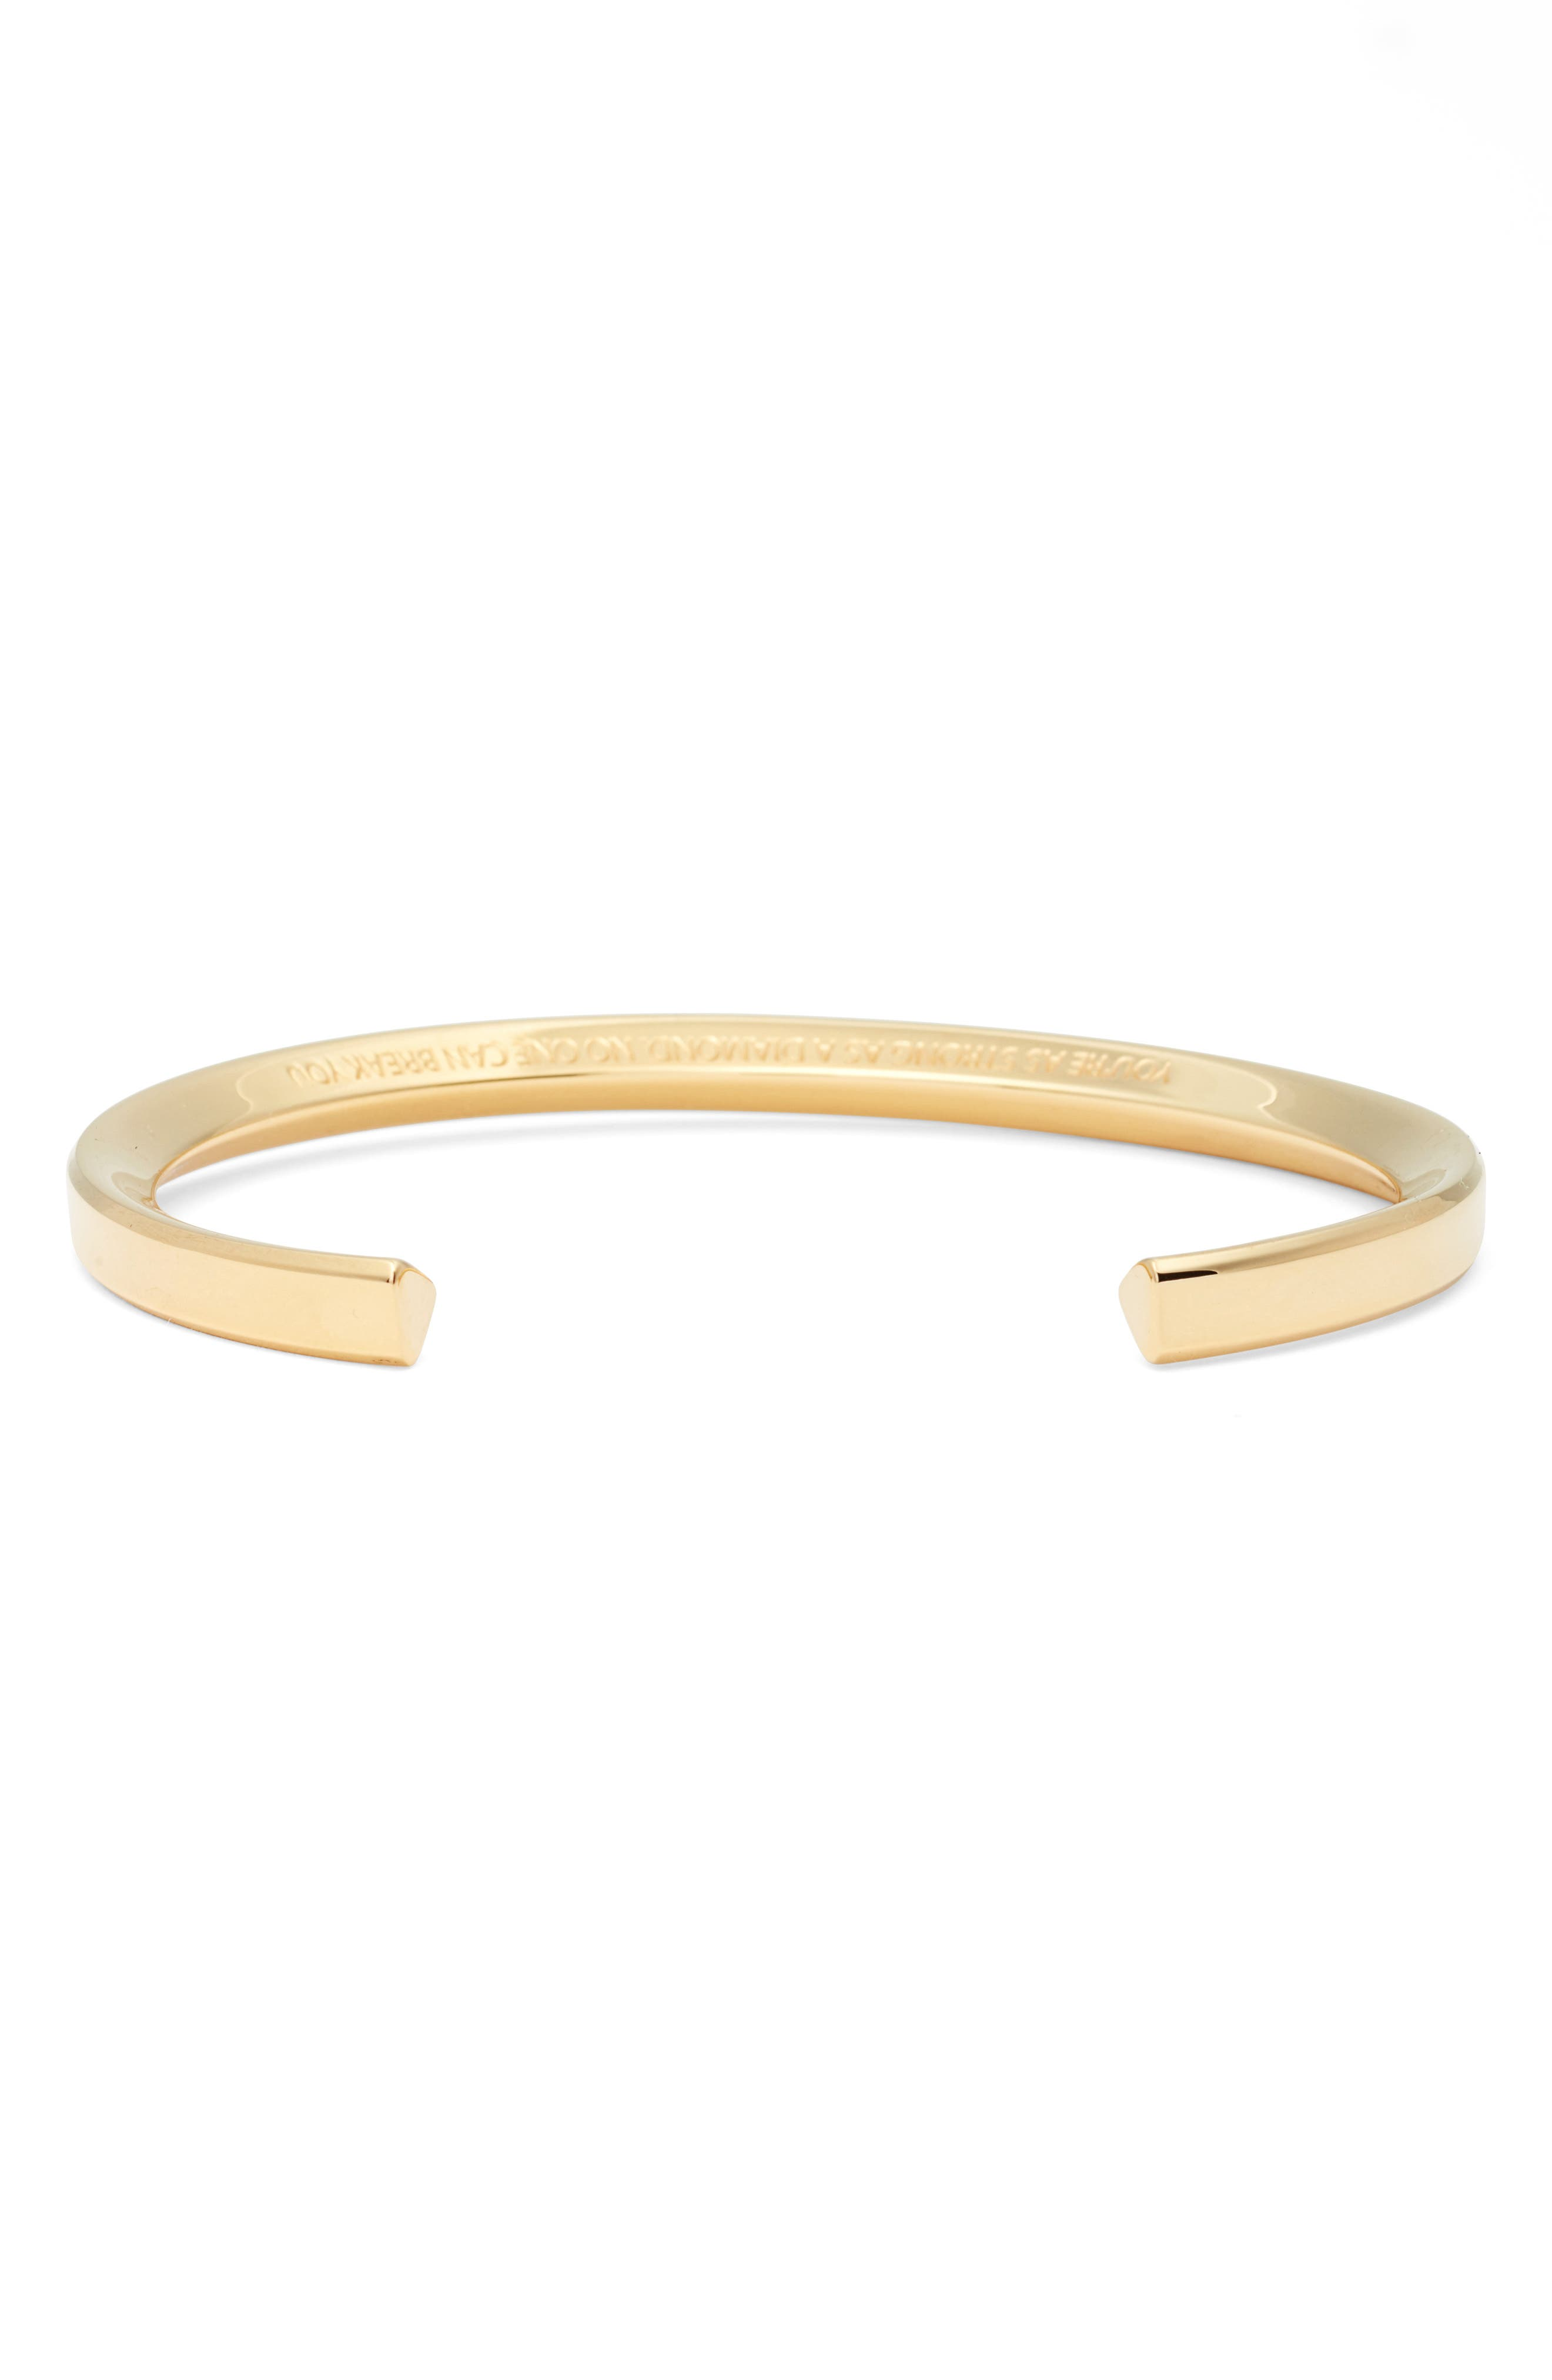 You're as Strong as a Diamond Cuff,                             Alternate thumbnail 2, color,                             Gold